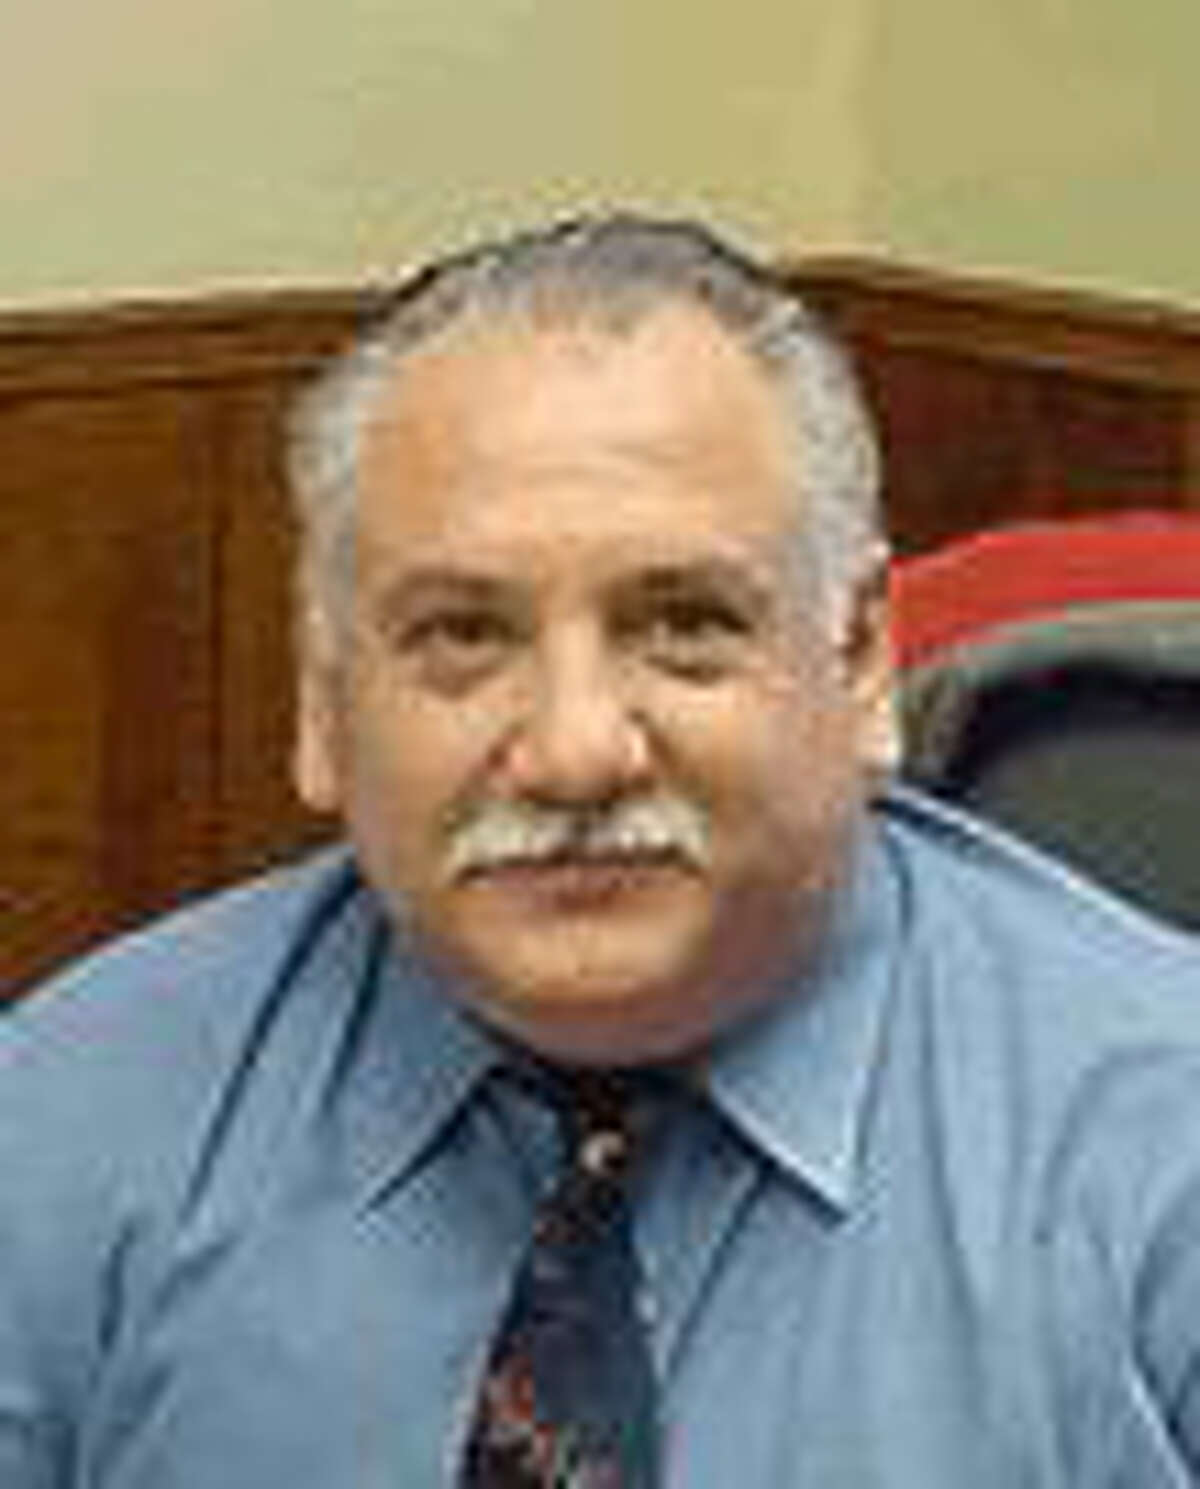 Bernie Morin Jr., Northside ISD's former director of maintenance and operations, seen in this undated photo from the NISD website, resigned in May 2011 after an audit found he allegedly violated procurement procedures. The Bexar County District Attorney's office is investigating the alleged misconduct.